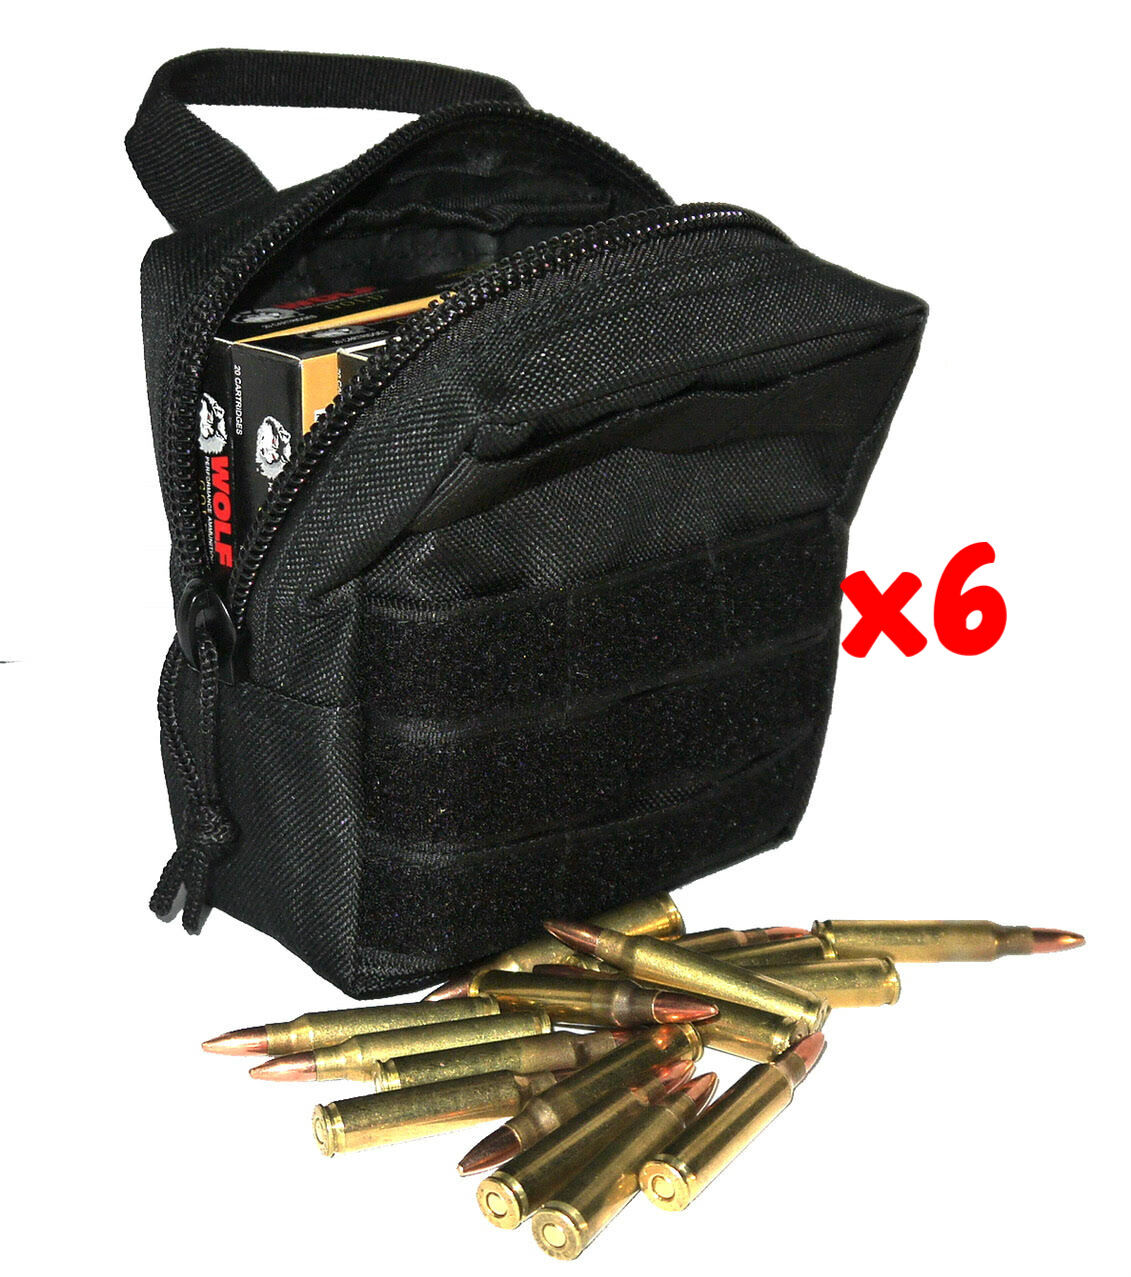 (6) 762X54 AMMO MODULAR MOLLE UTILITY POUCHES FRONT HOOK LOOP STRAP .762 X 54